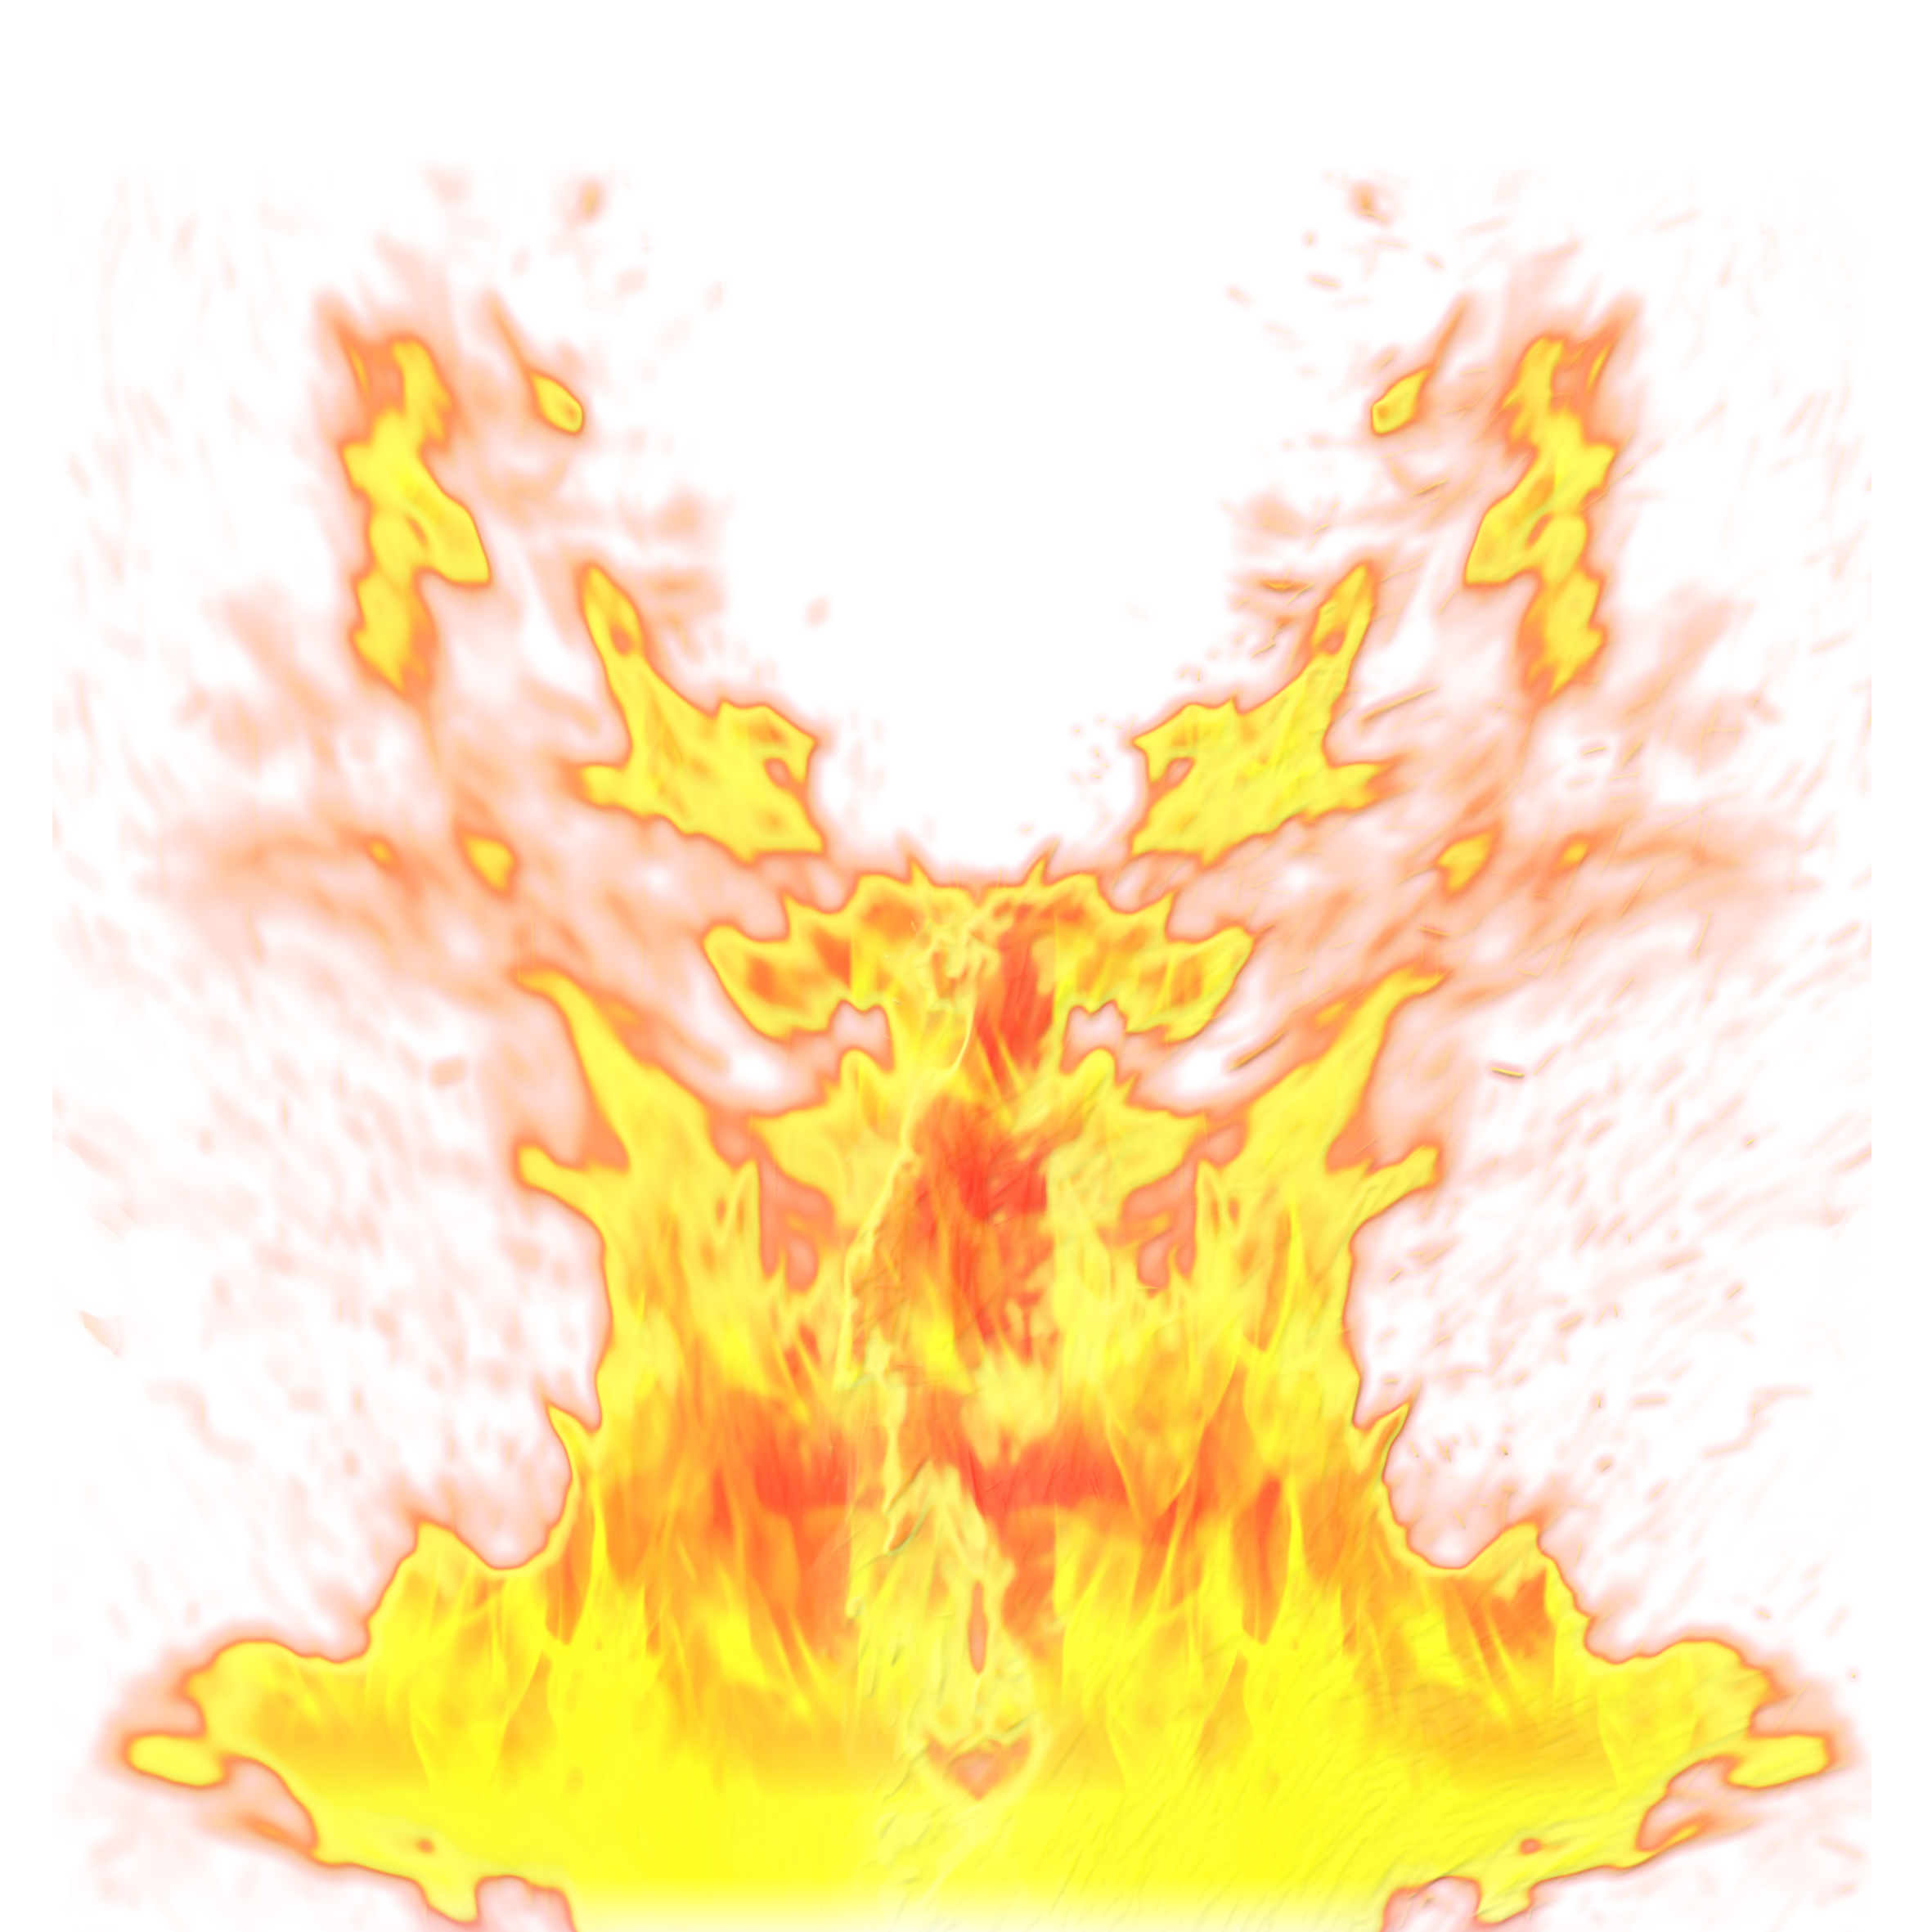 Fire flame PNG images free download hd